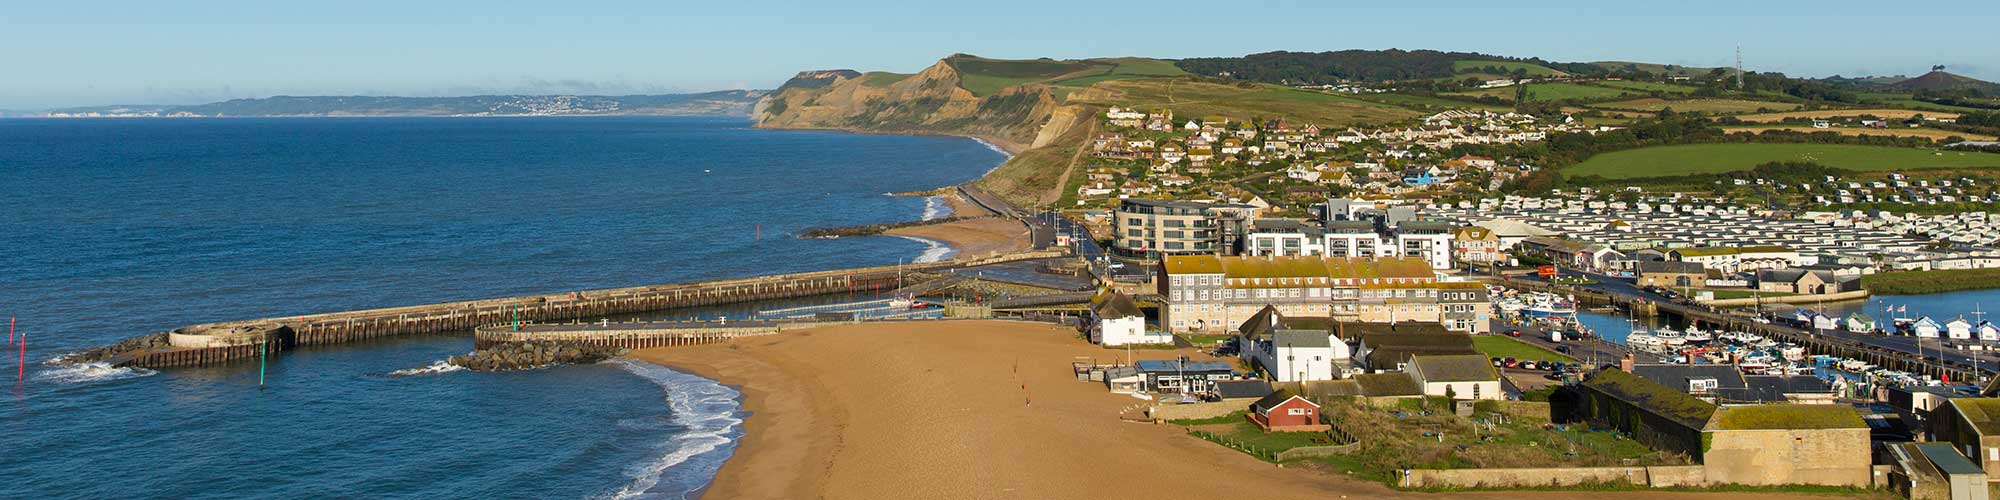 Valuation Report, West Bay